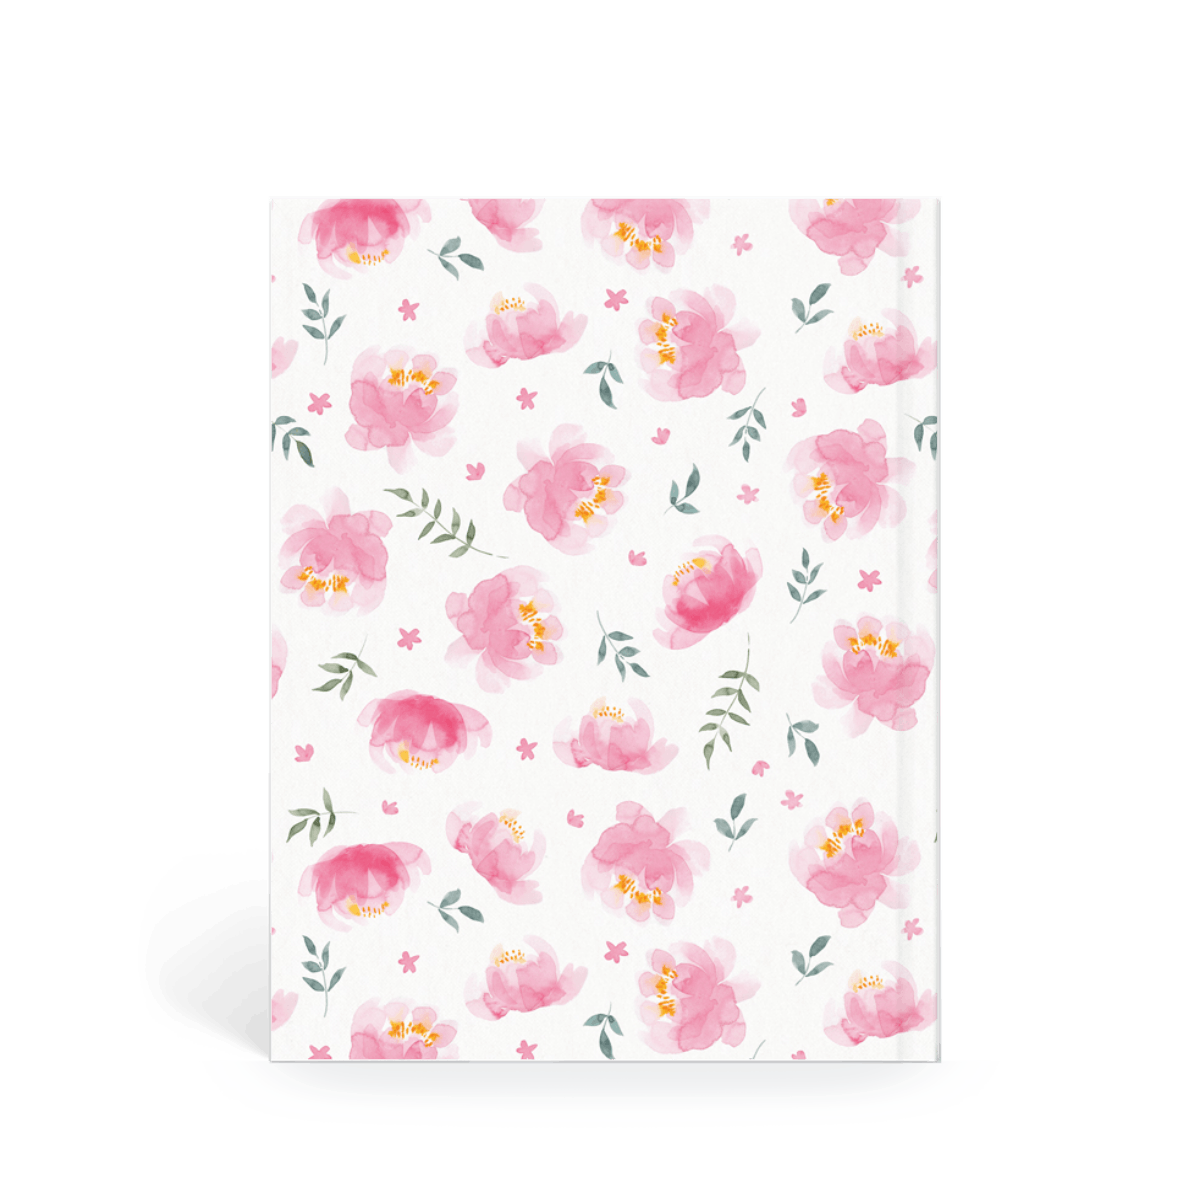 Https%3a%2f%2fwww.papier.com%2fproduct image%2f44159%2f27%2fpeonies 11102 back 1535728171.png?ixlib=rb 1.1